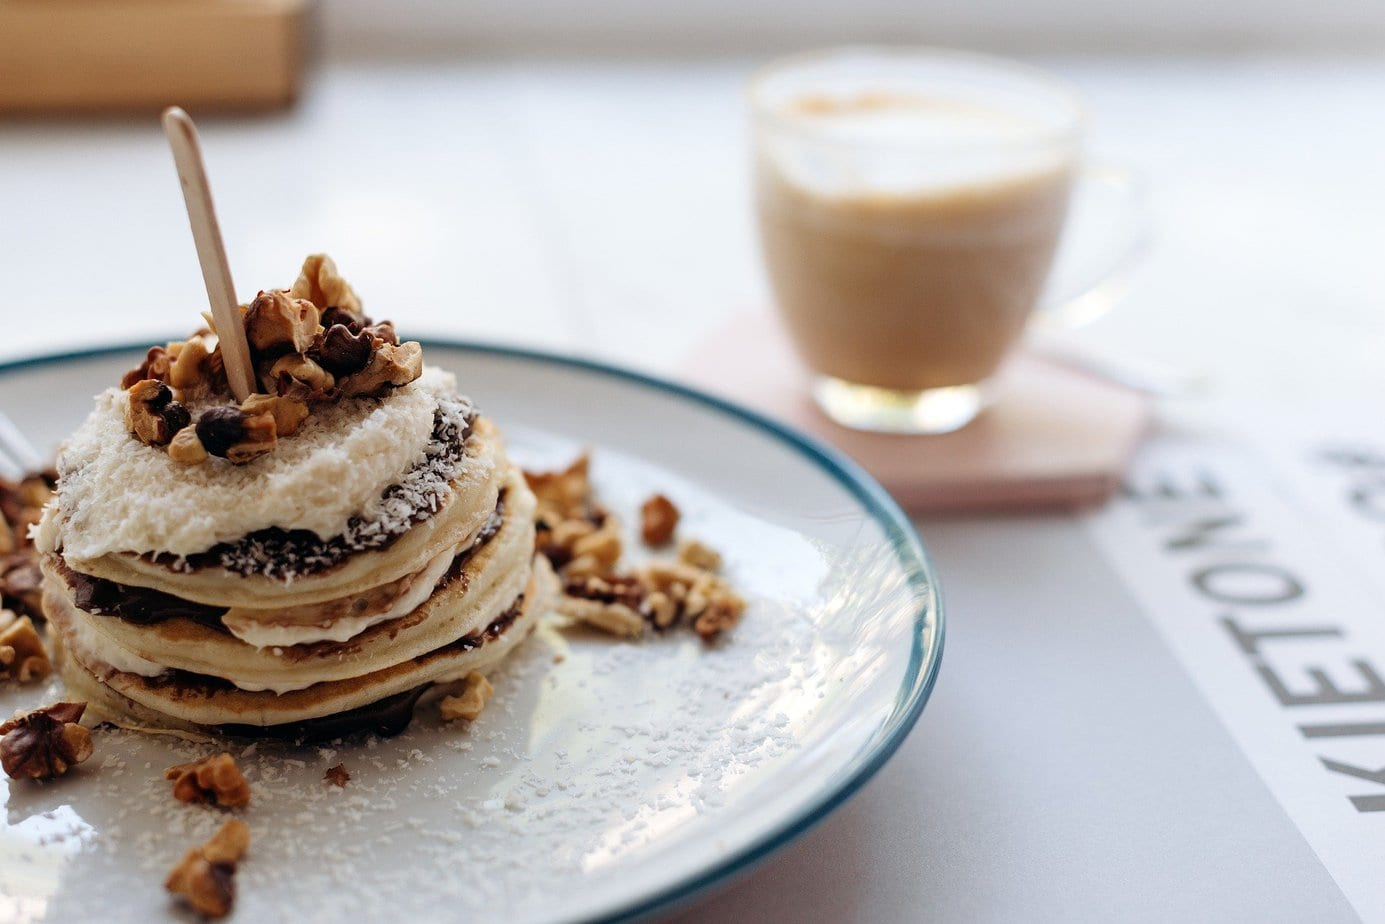 Pancakes stacked on a plate - Example of visual communication